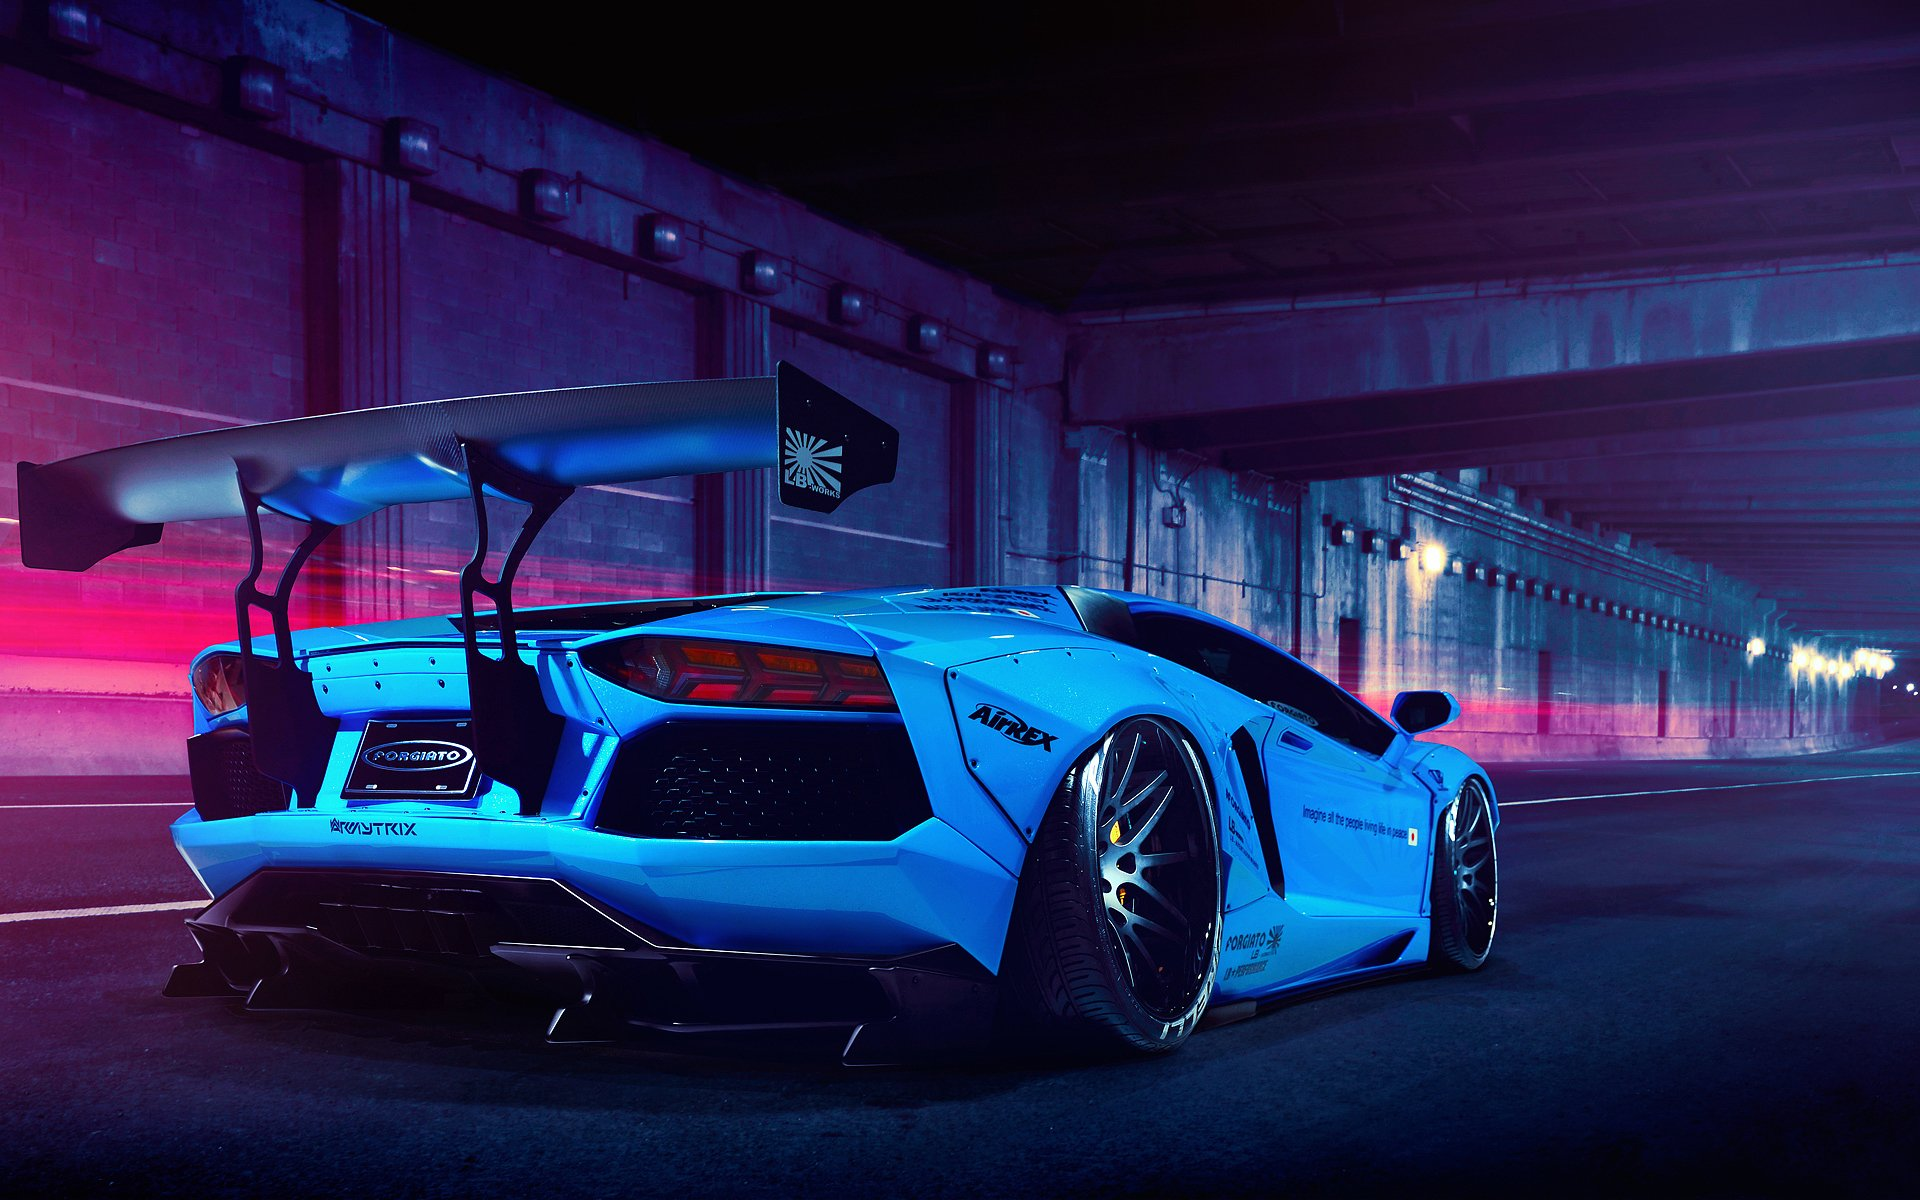 335 Lamborghini Aventador HD Wallpapers | Background Images ... on lamborghini with neon pink and blue, matte black audi r8 blue, nissan 300zx azure blue, lamborghini countach, porsche azure blue, lamborghini veneno neon blue, lamborghini gallardo drifting, lamborghini gallardo blue, jaguar xkr azure blue, mclaren p1 azure blue, cool cars lamborghini blue, ford mustang azure blue, widescreen 3d facebook covers blue, lotus evora azure blue,